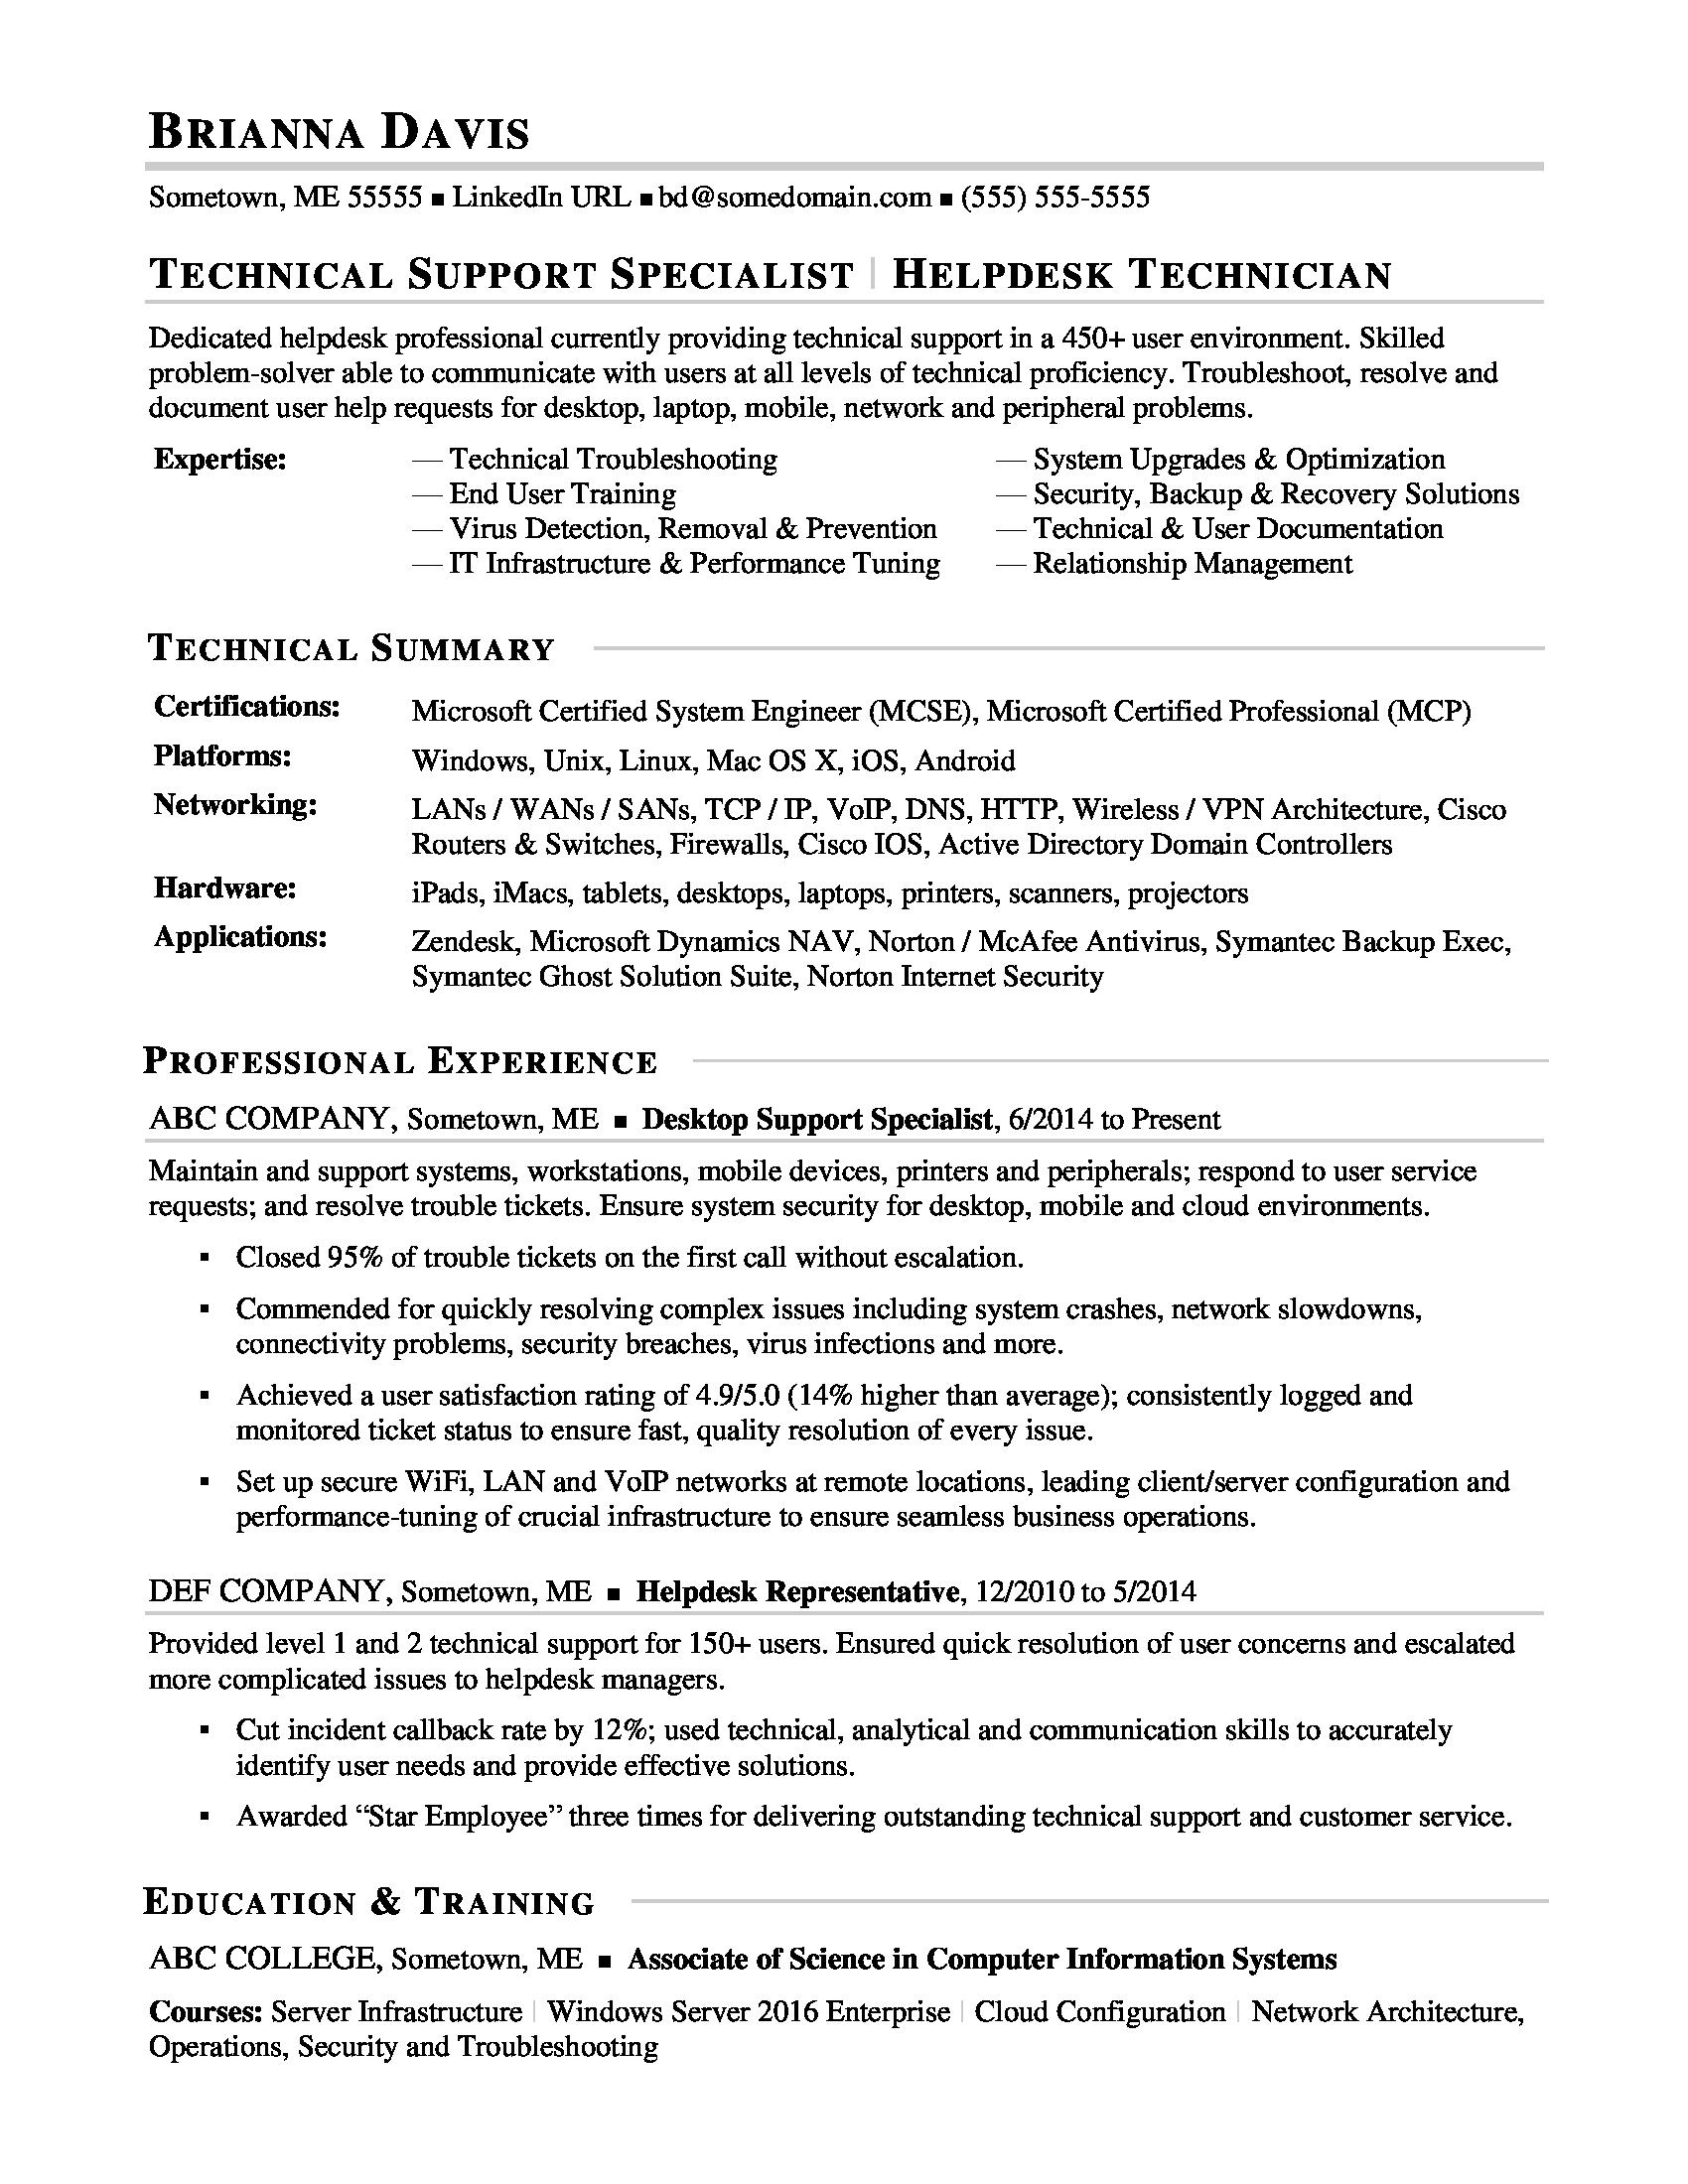 sample resume for experienced it help desk employee monster technical support samples Resume Technical Support Resume Samples